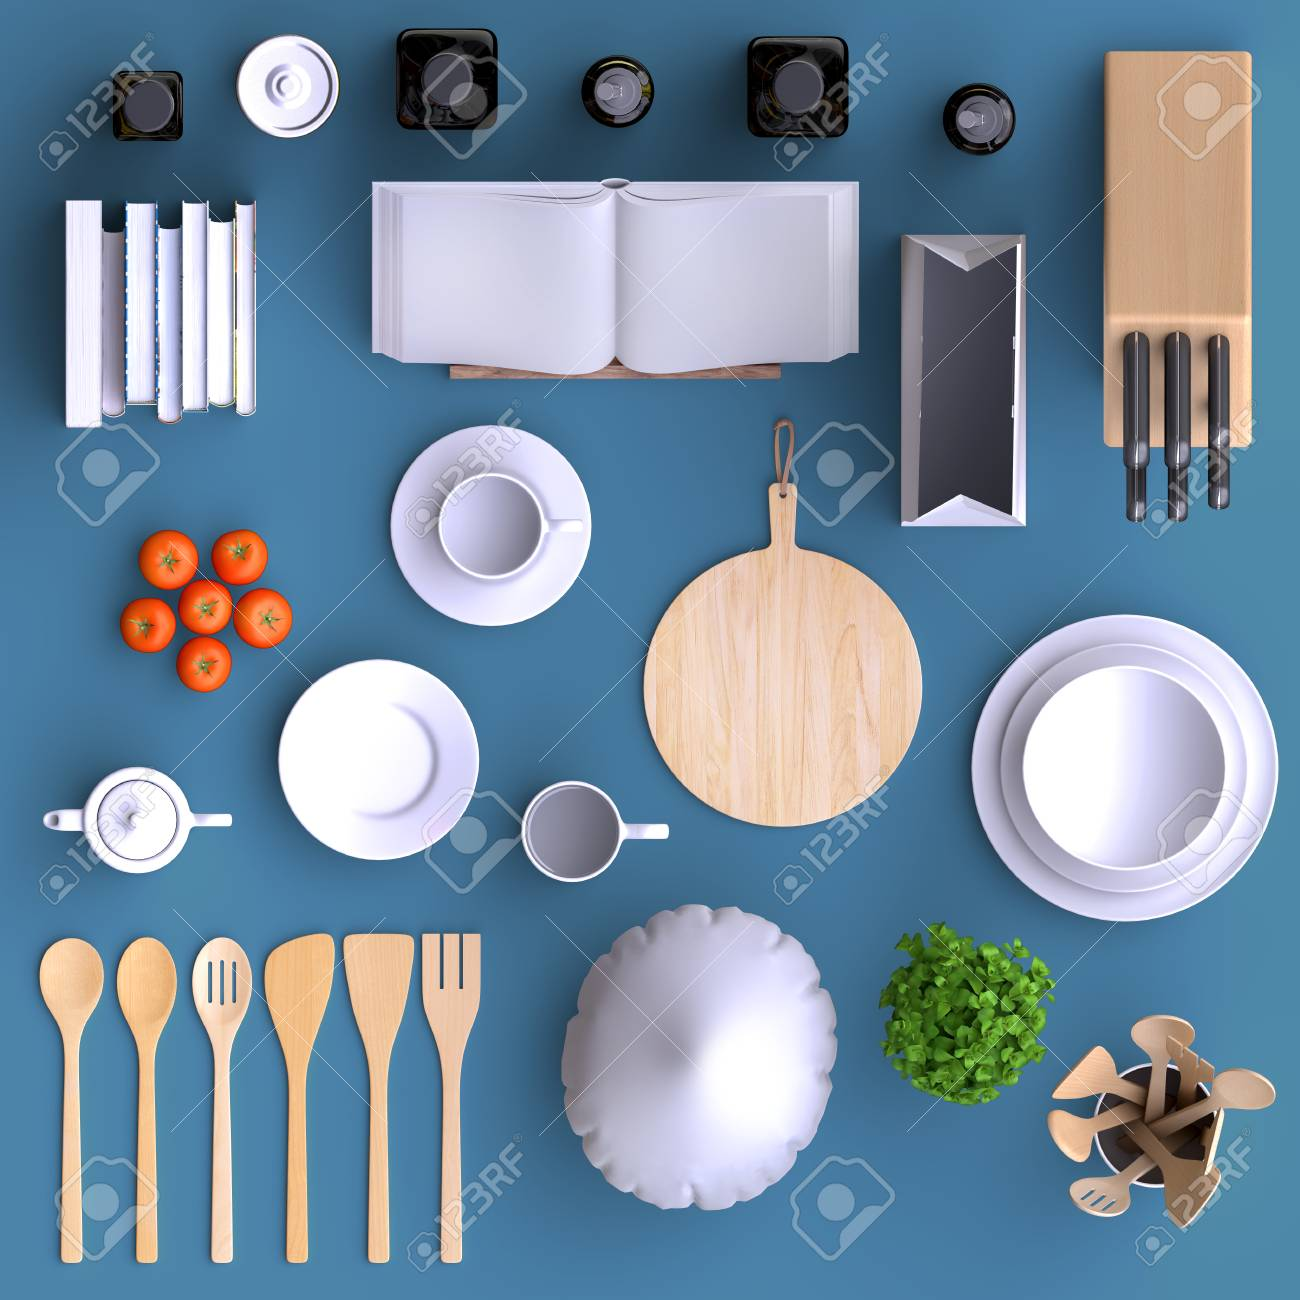 Branding Mock Up Kitchen With Table And Kitchenware Blank